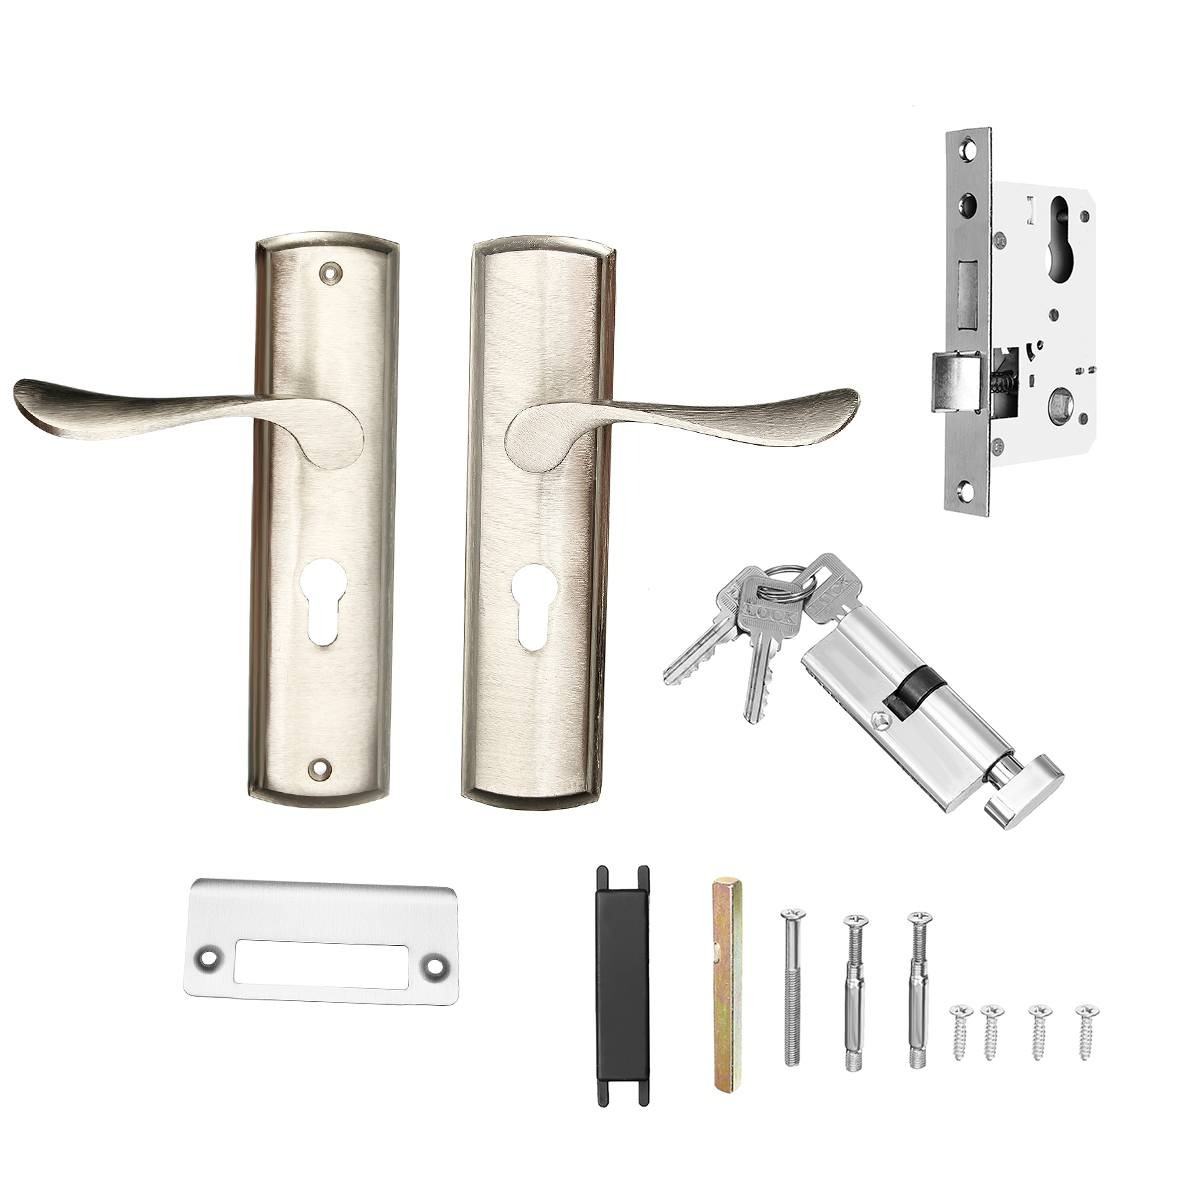 Mechanical Door Lock Set Aluminum Alloy Handle Deadbolt Latch Locks Interior Lockset Kit Home Office Security Door Hardware